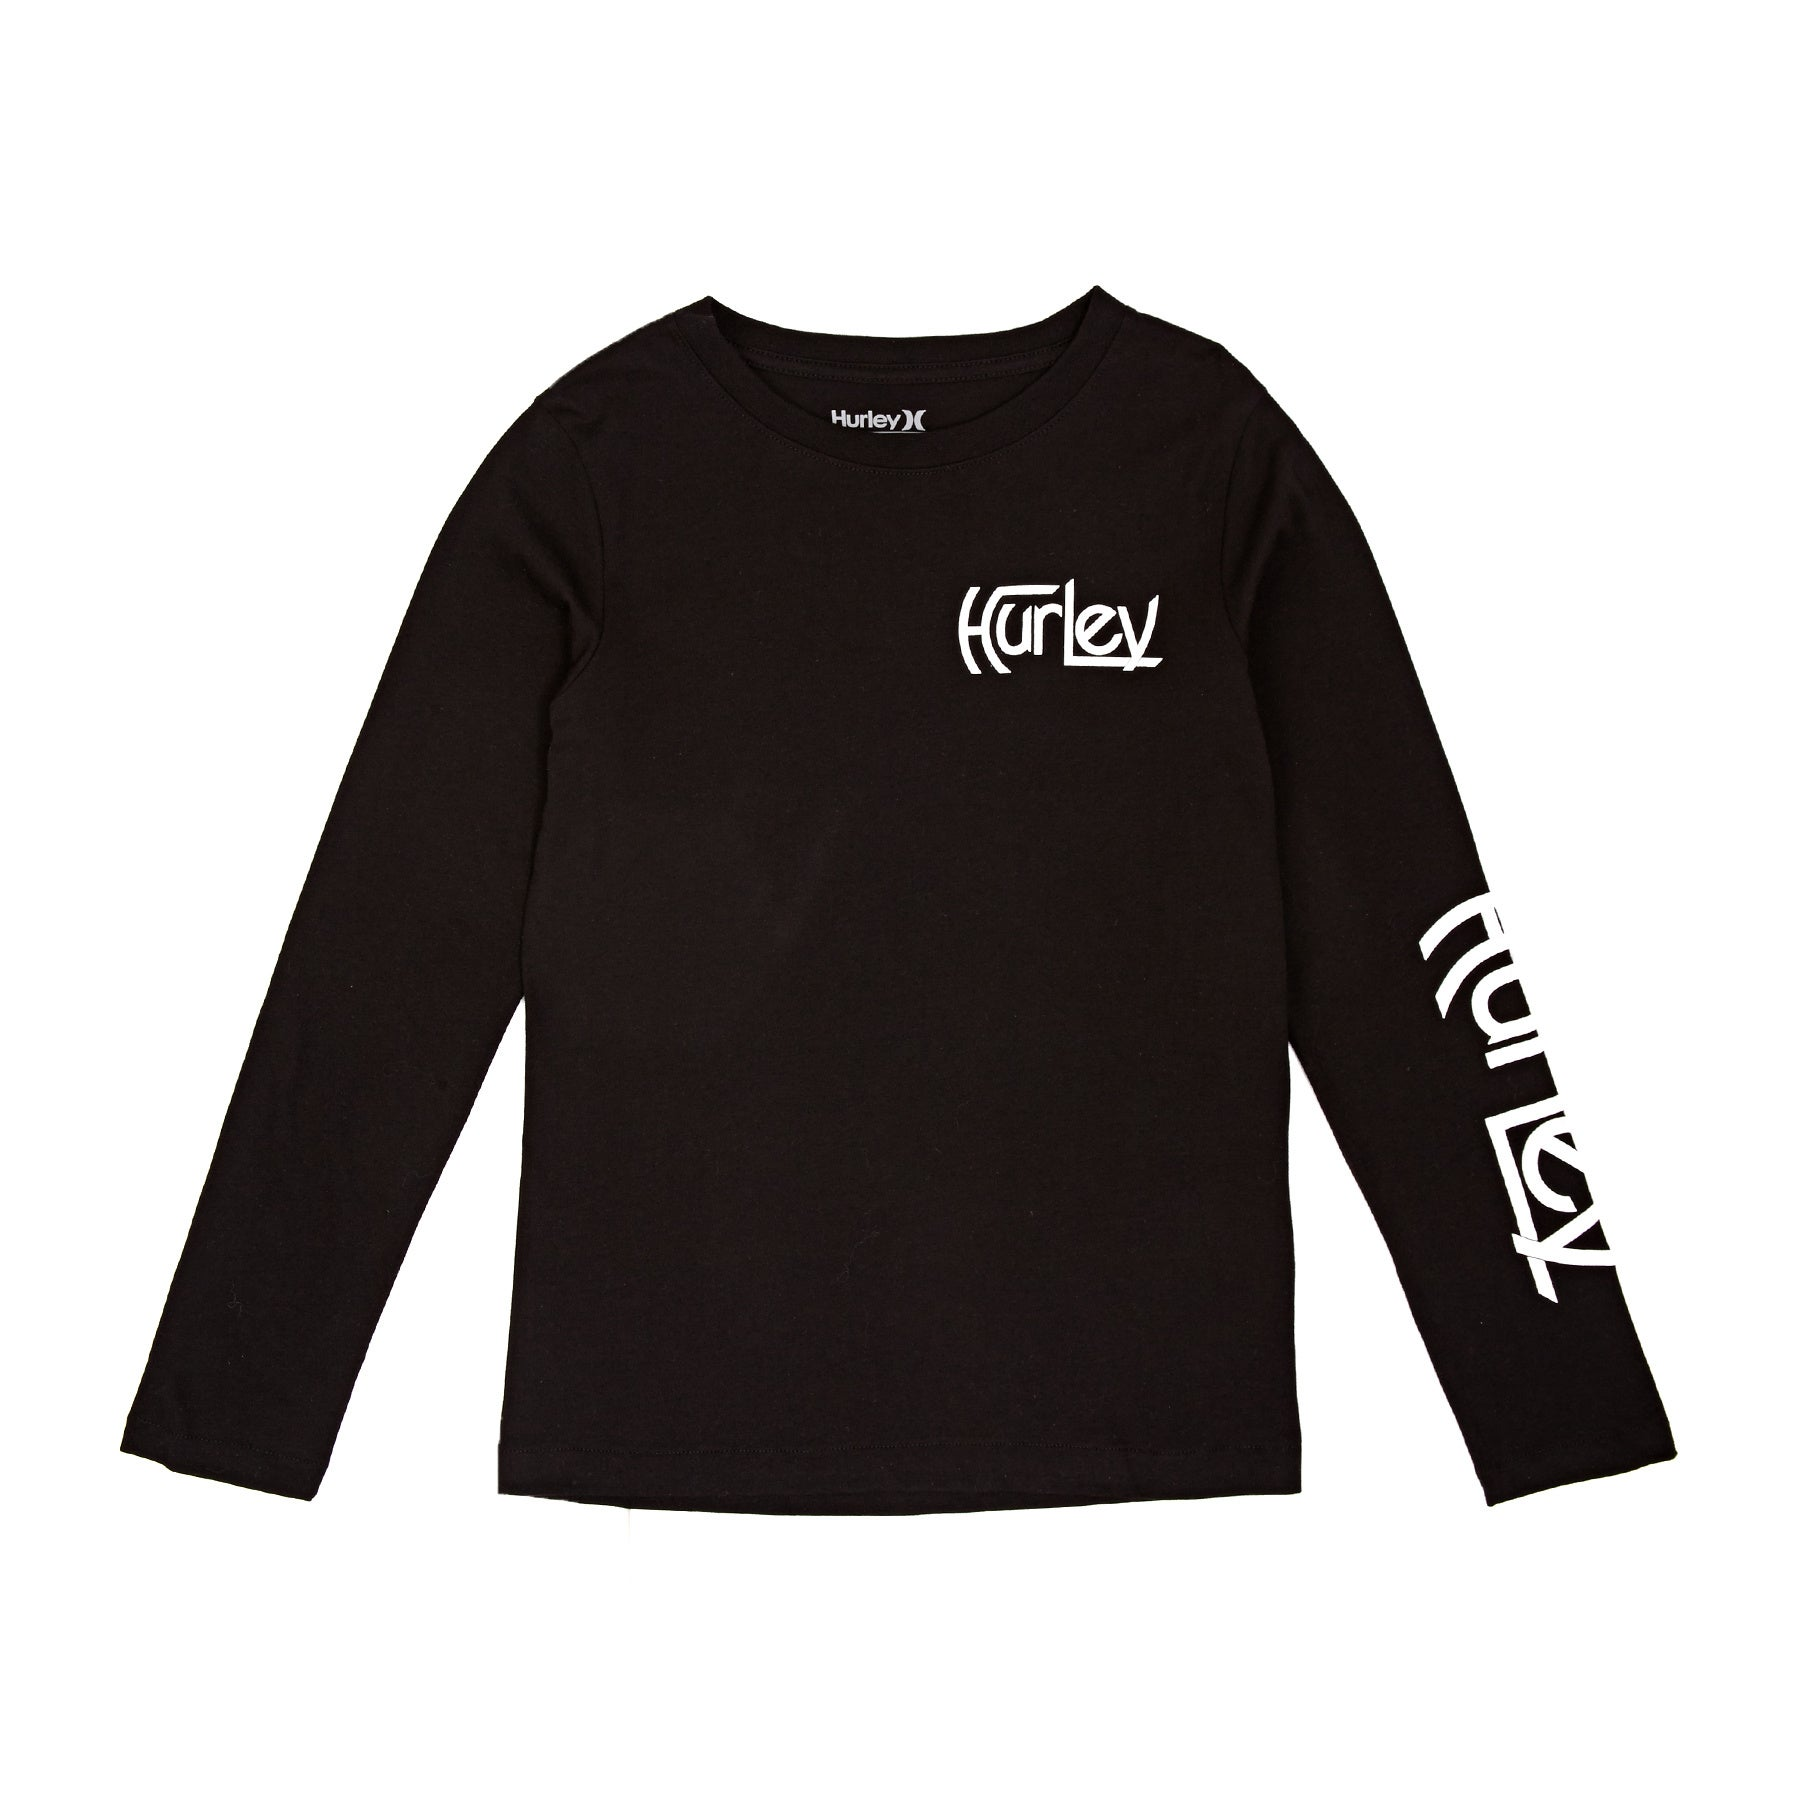 Hurley Original Vintage Boys Long Sleeve T-Shirt - Black